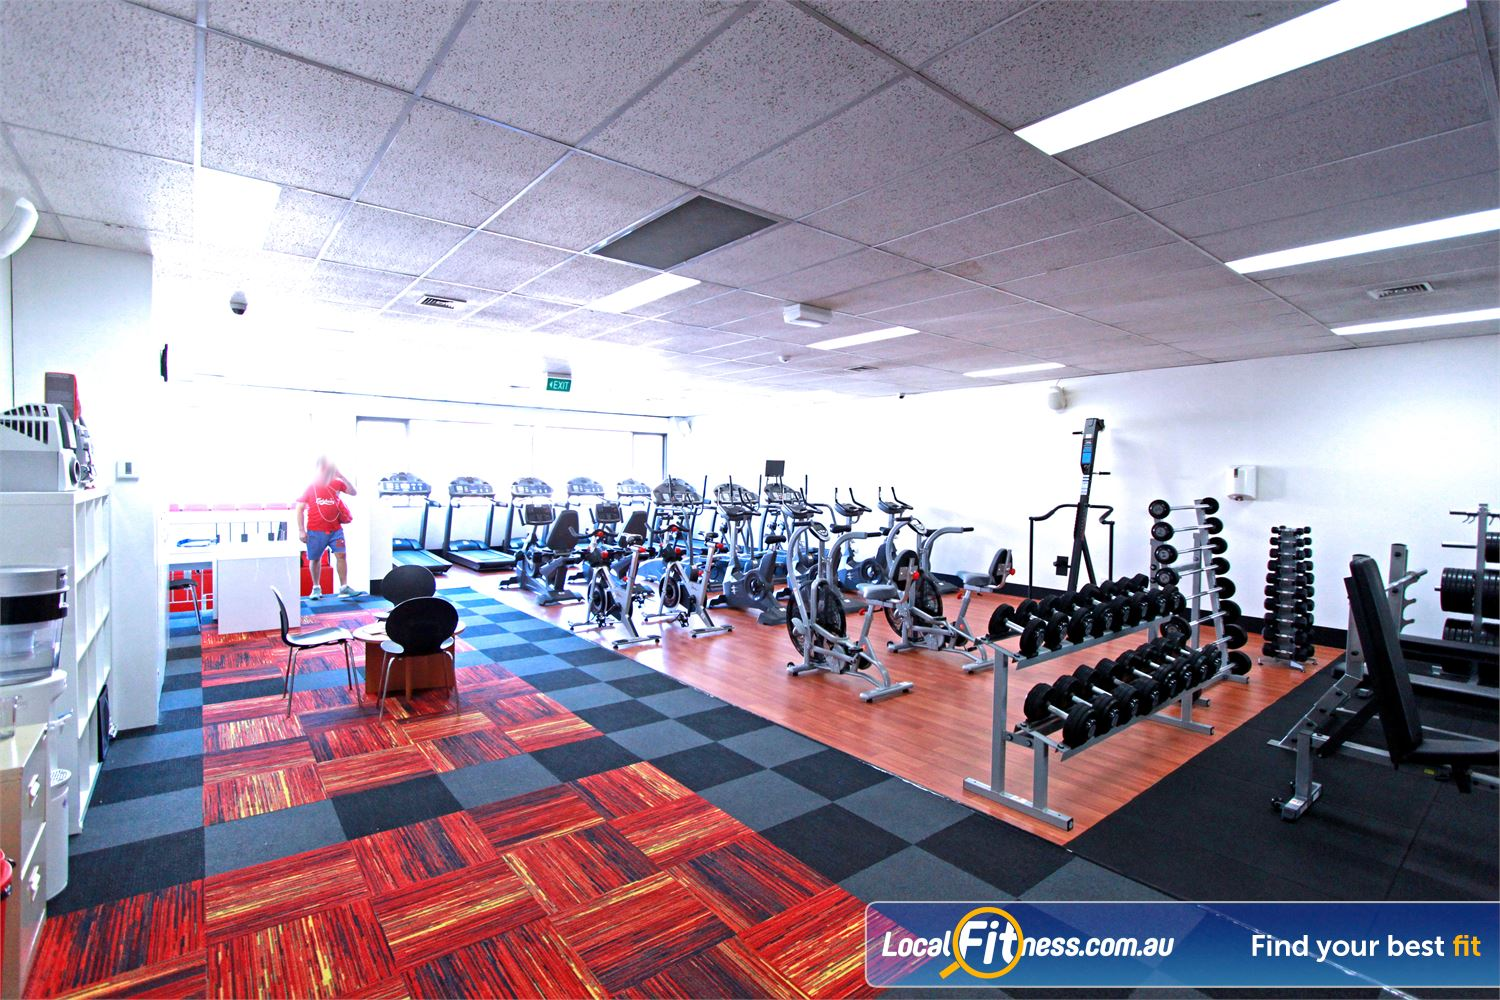 Carlton Fitness Gym Carlton North Welcome to The Carlton Fitness Gym - 24 hour Carlton Gym.